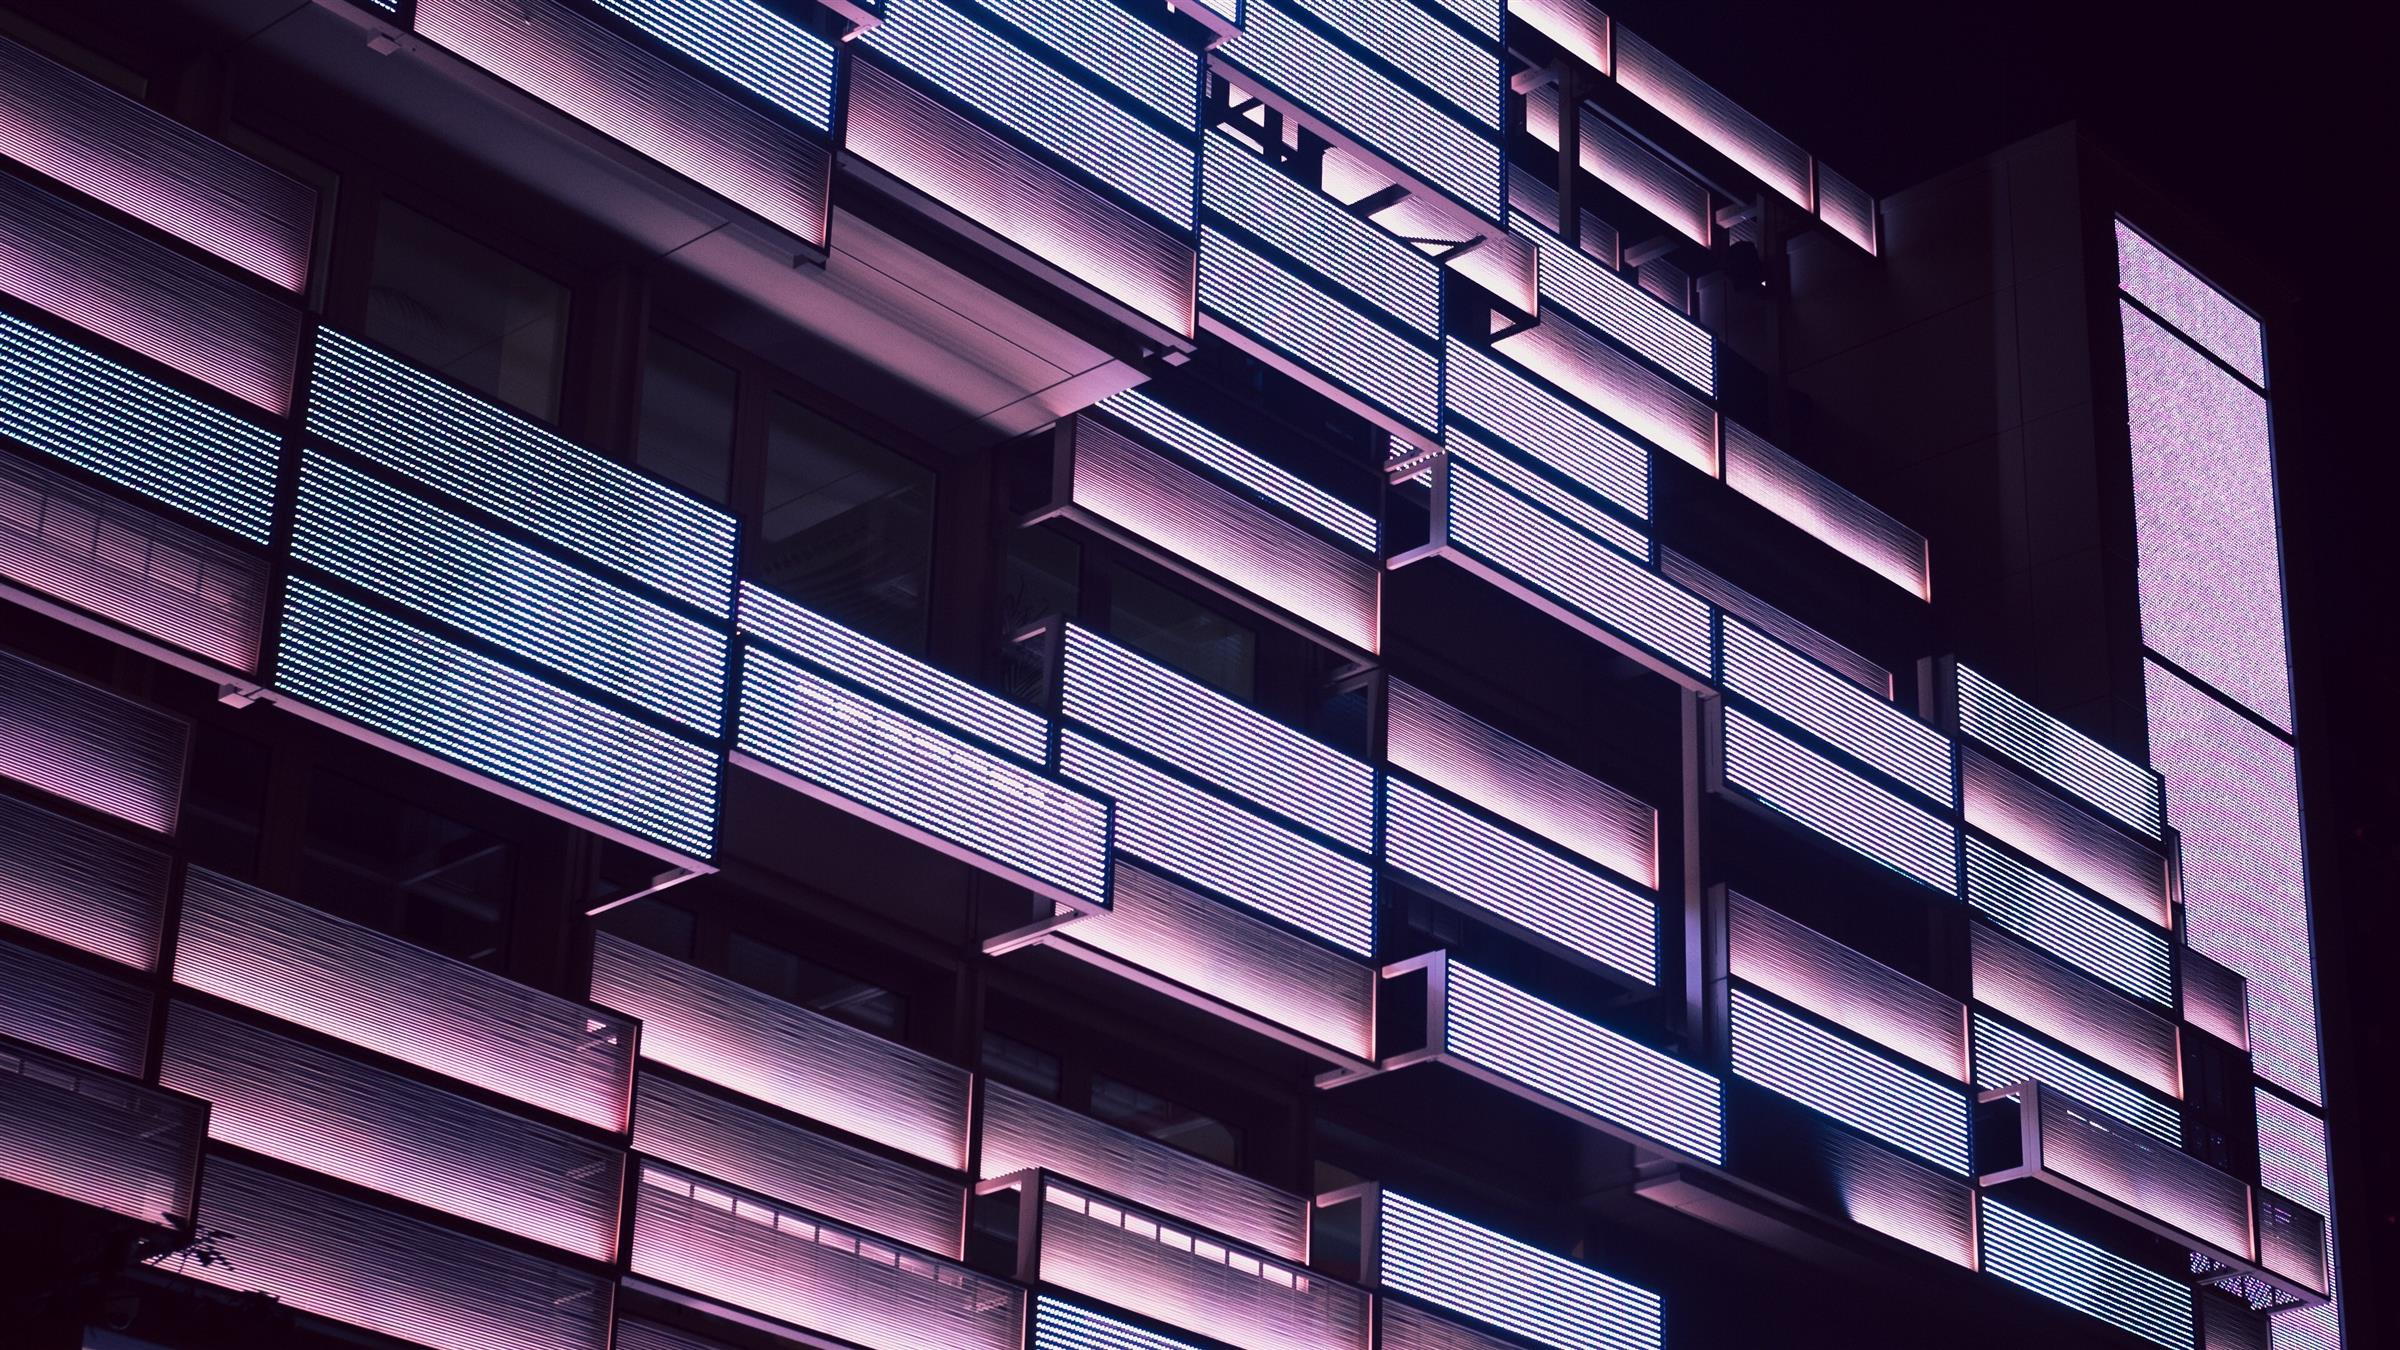 2400x1350 Building Balcony Abstract 4K Wallpaper